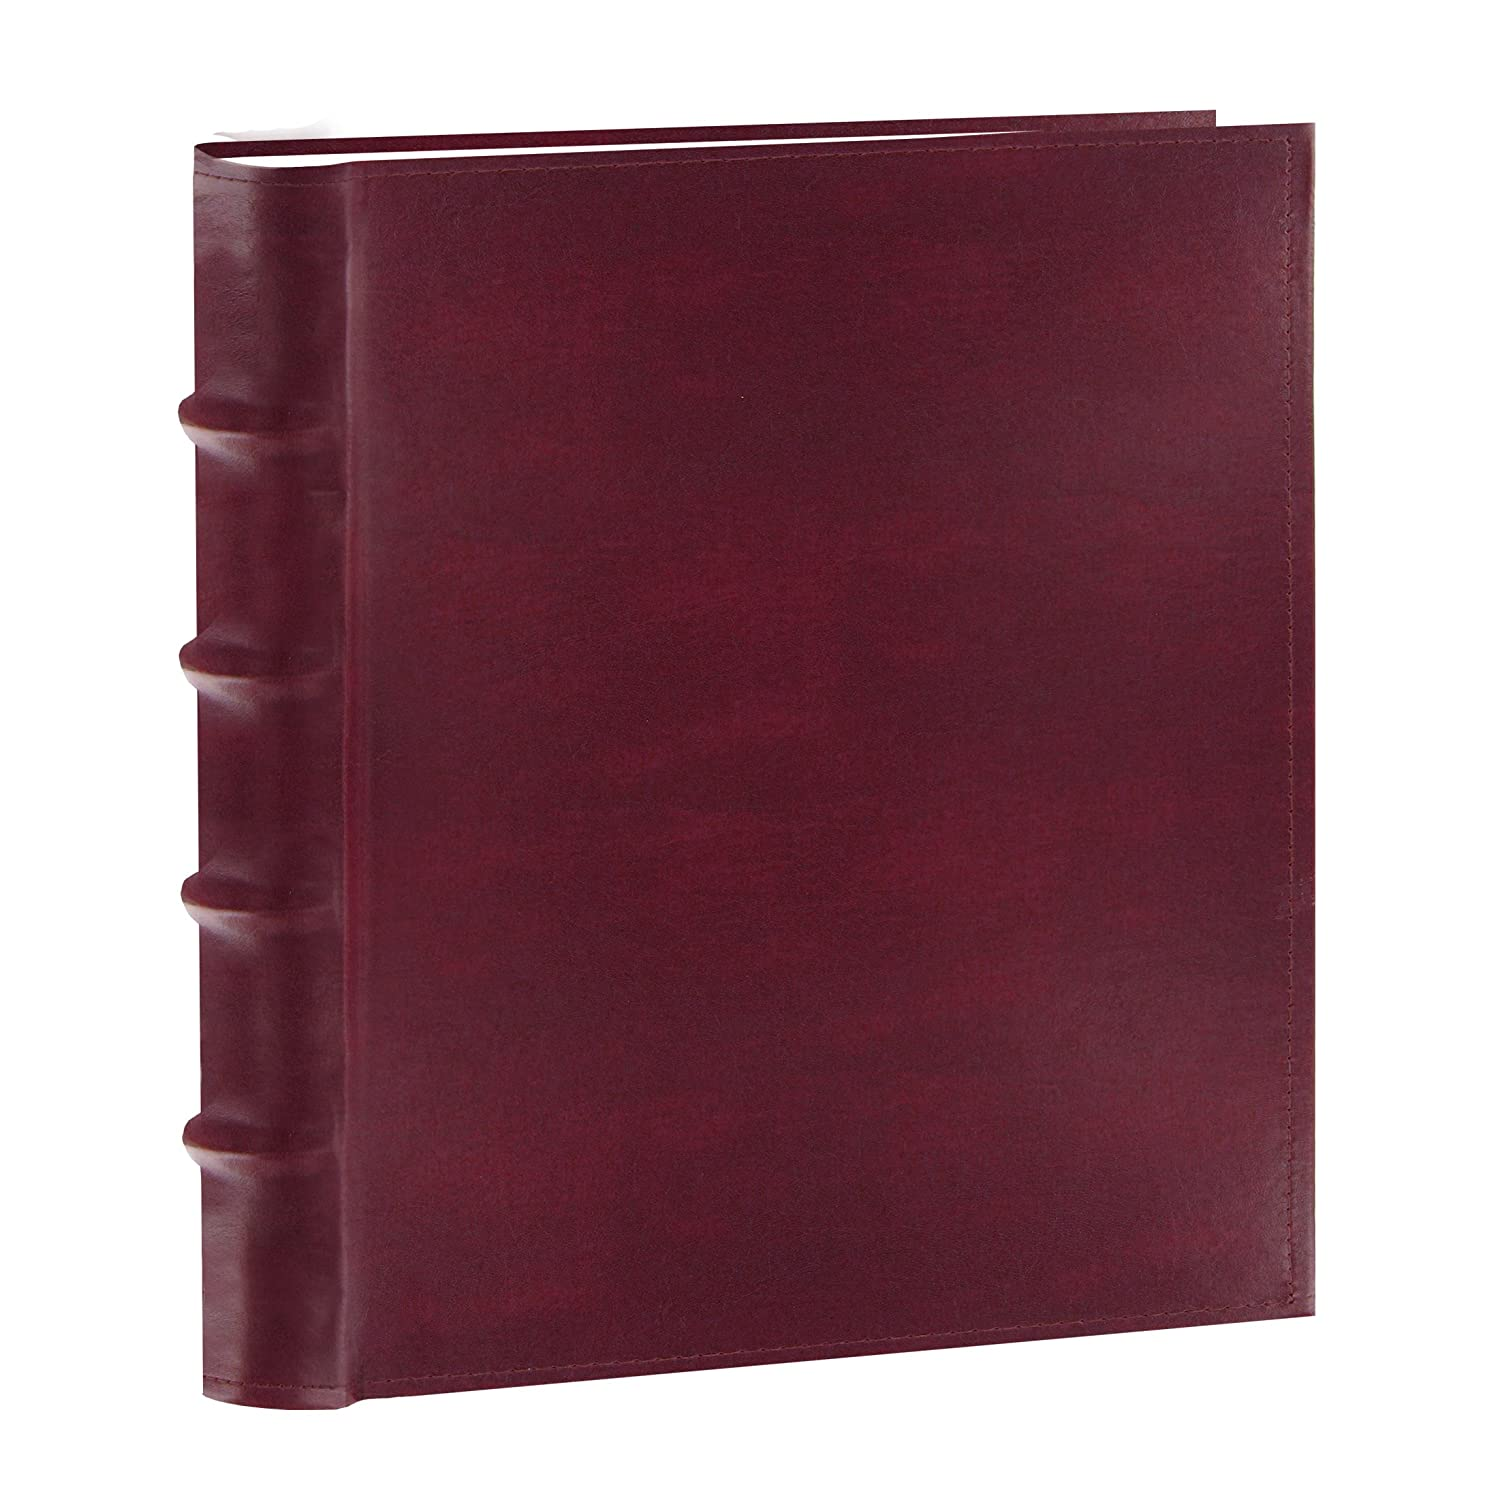 Pioneer Photo Albums 100-Pocket European Bonded Leather Photo Album for 4 by 6-Inch Prints, Burgundy CLB-146/BG